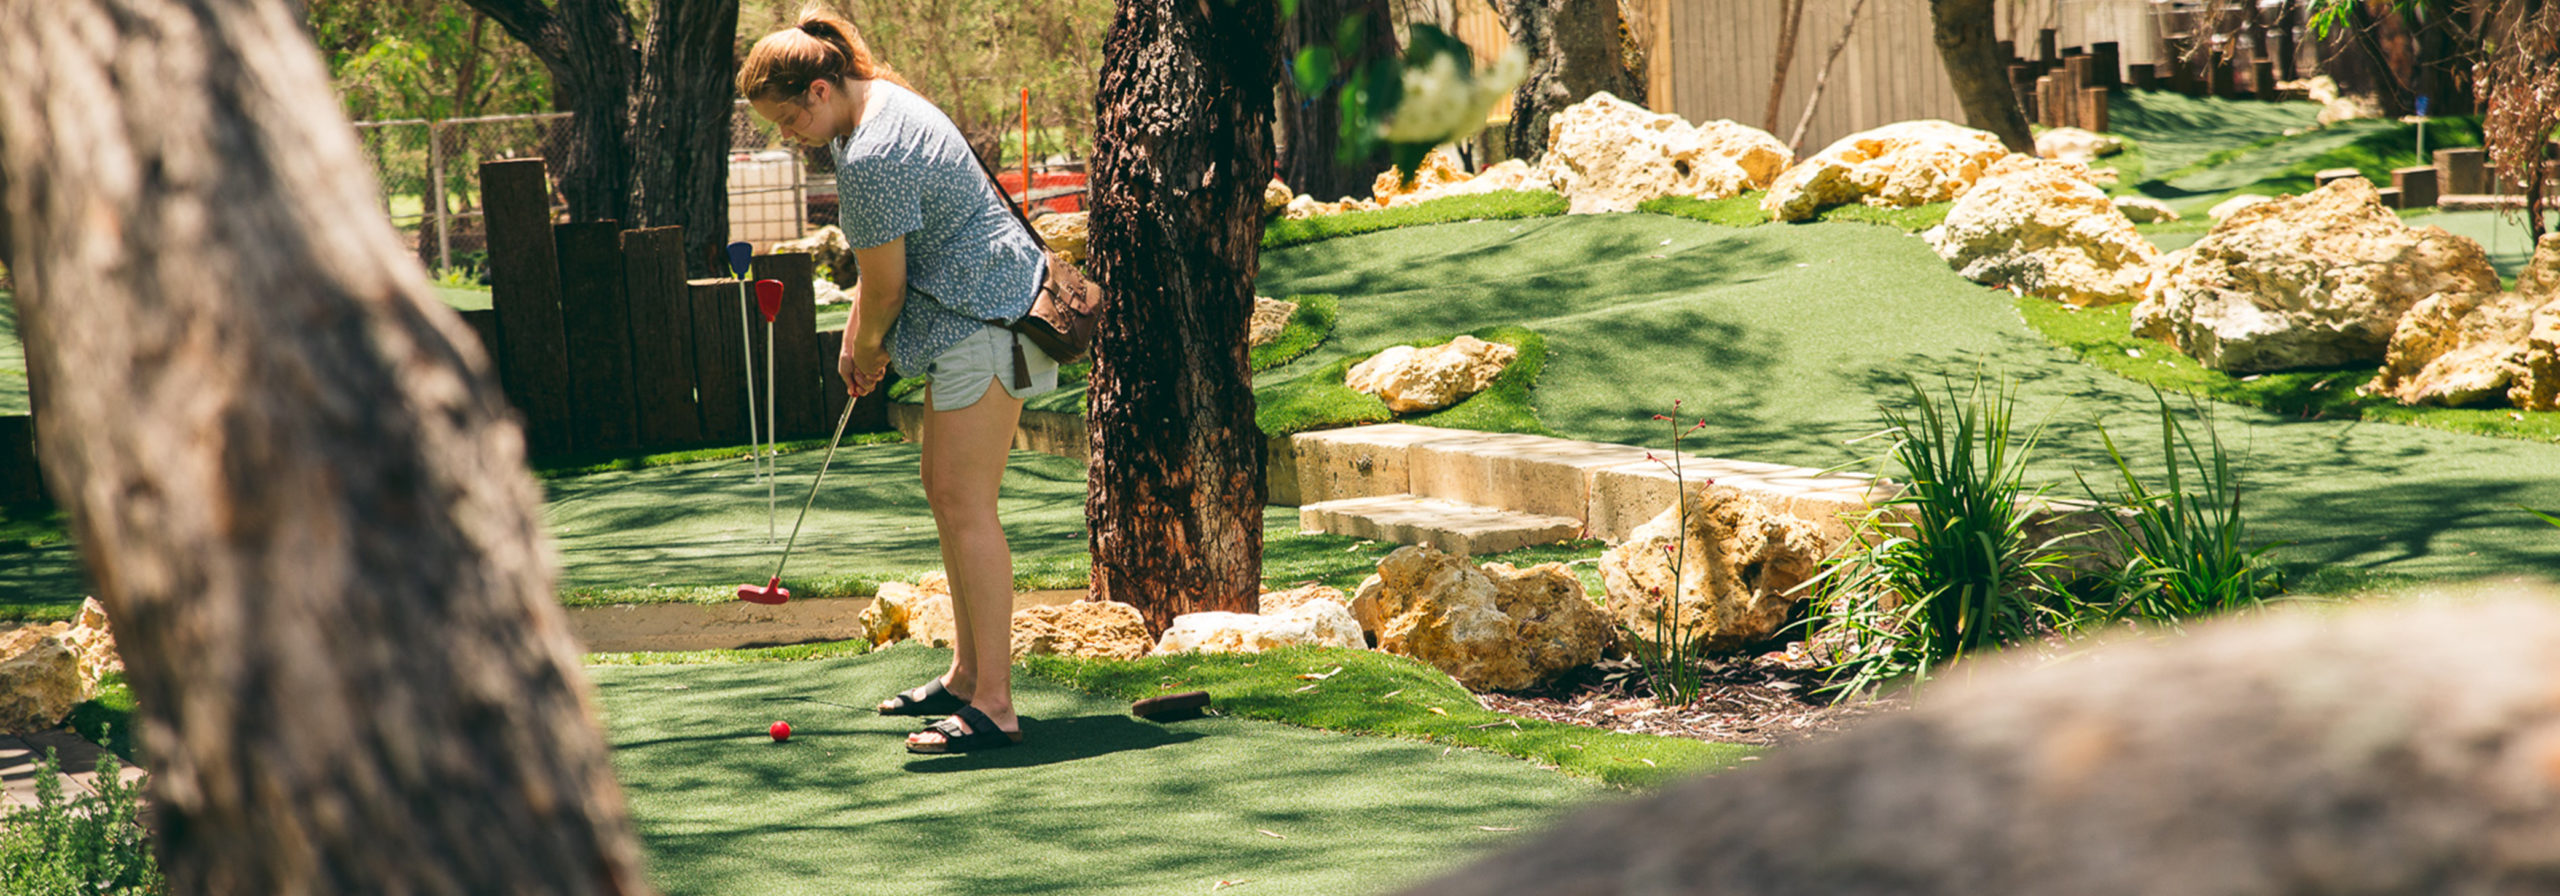 Par 3 Golf & Mini Golf Busselton, South West